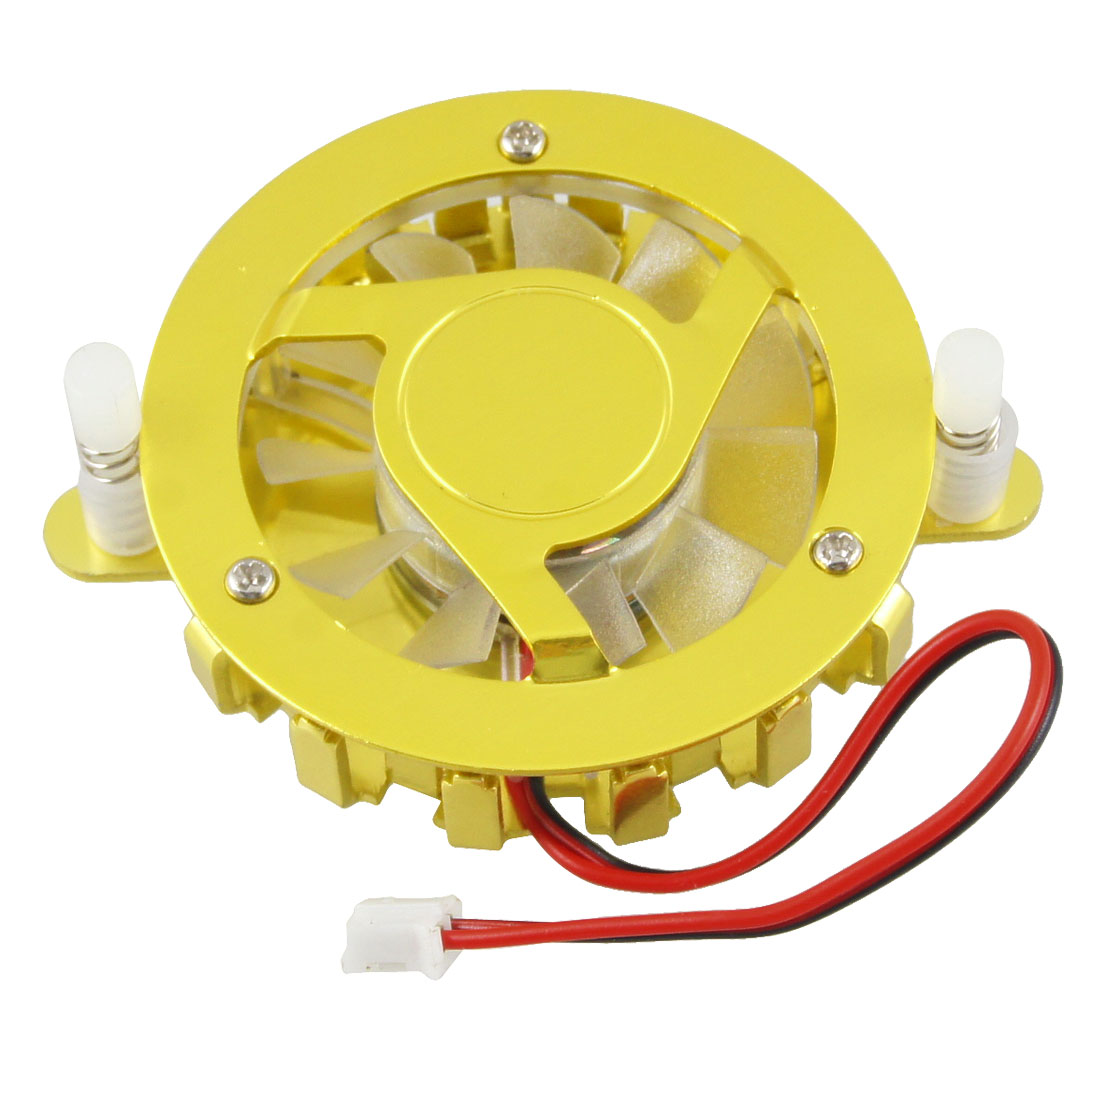 Gold Tone Clear Round Computer CPU Cooler Cooling Fan